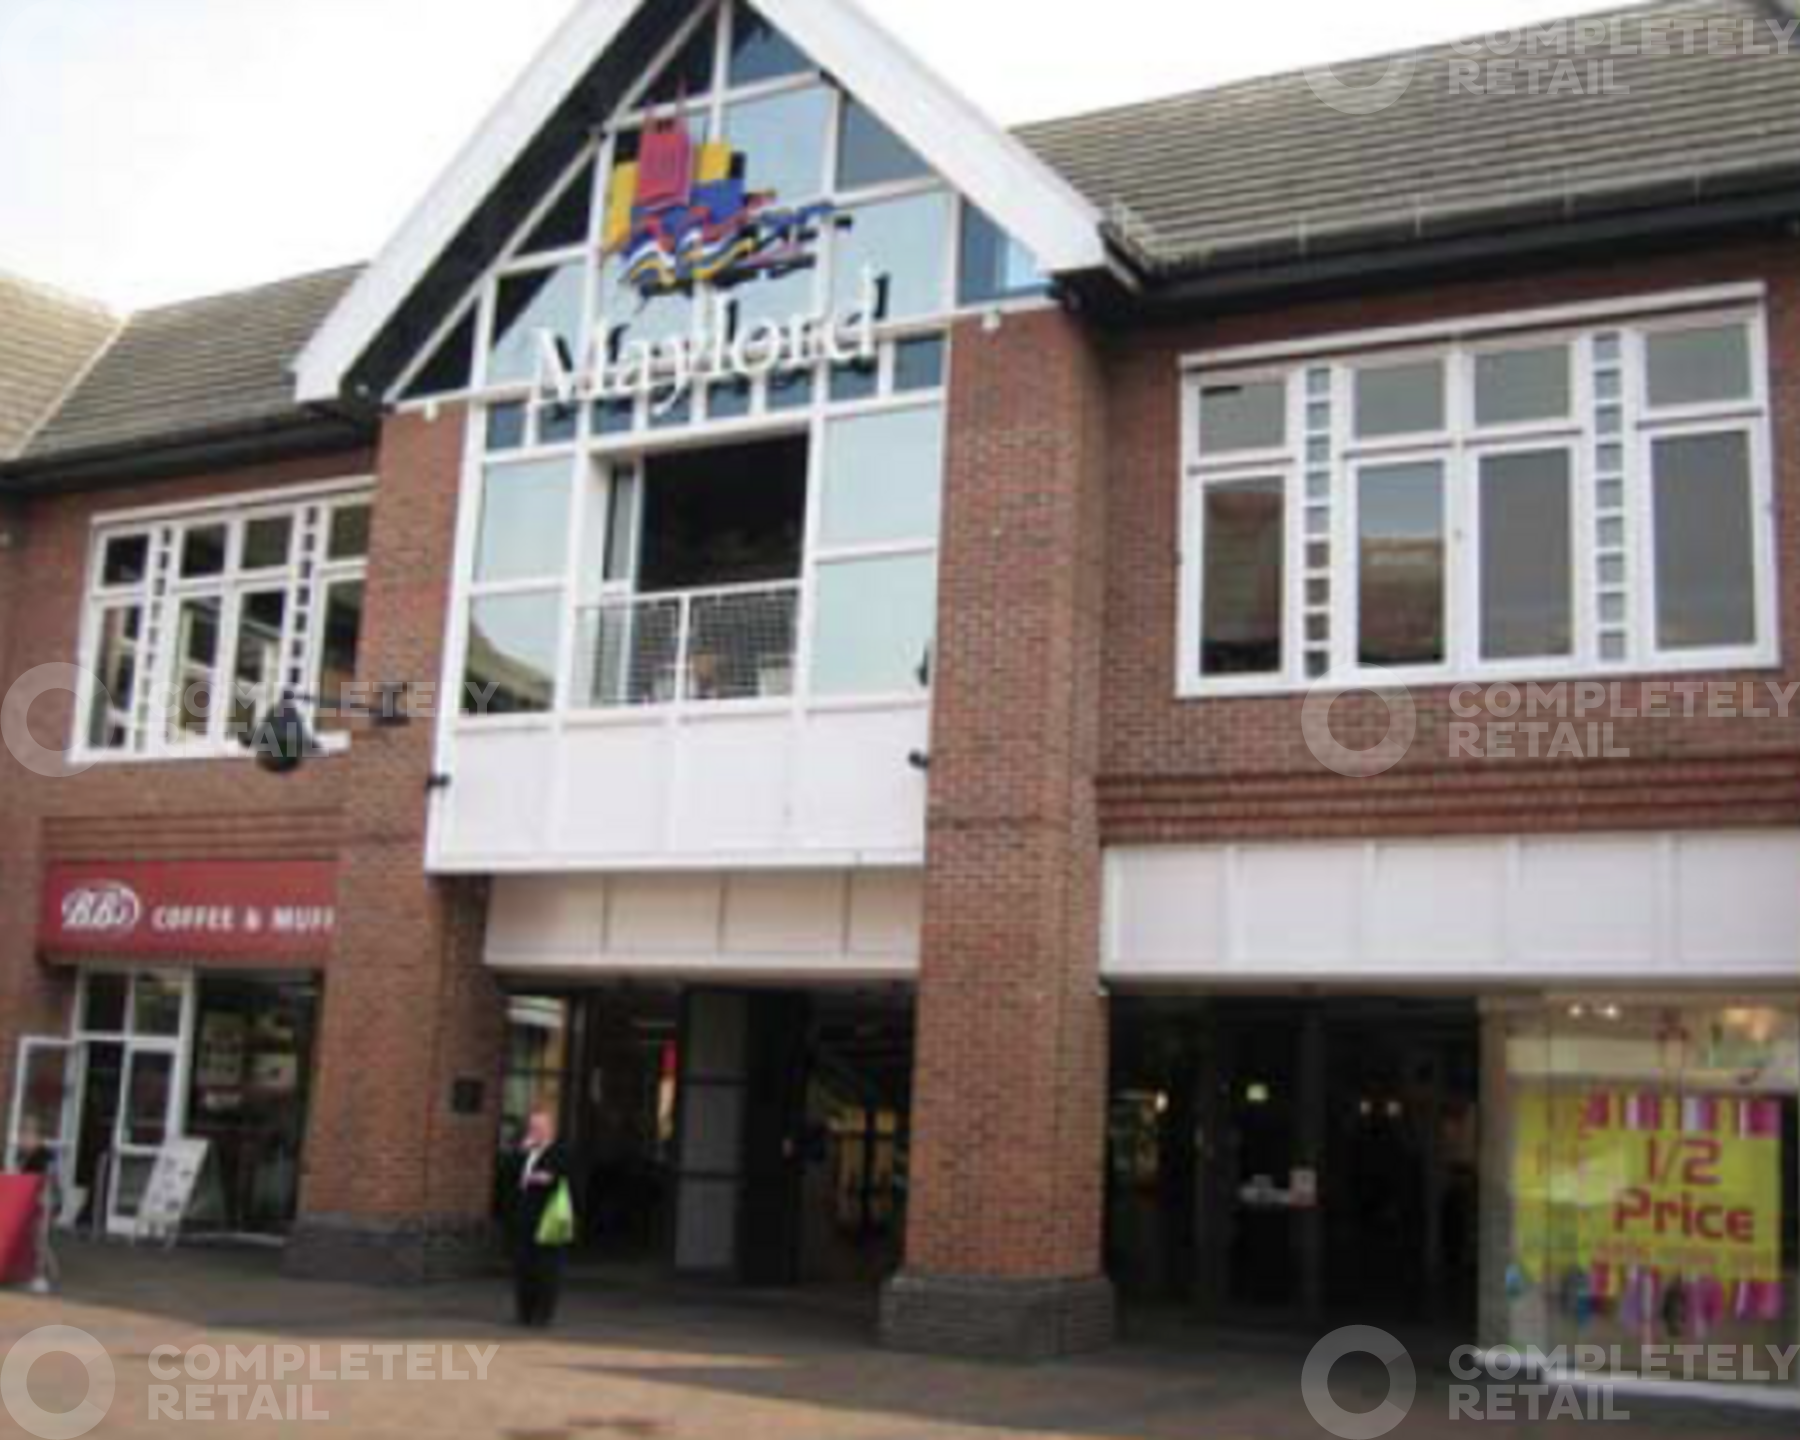 The Maylord Shopping Centre